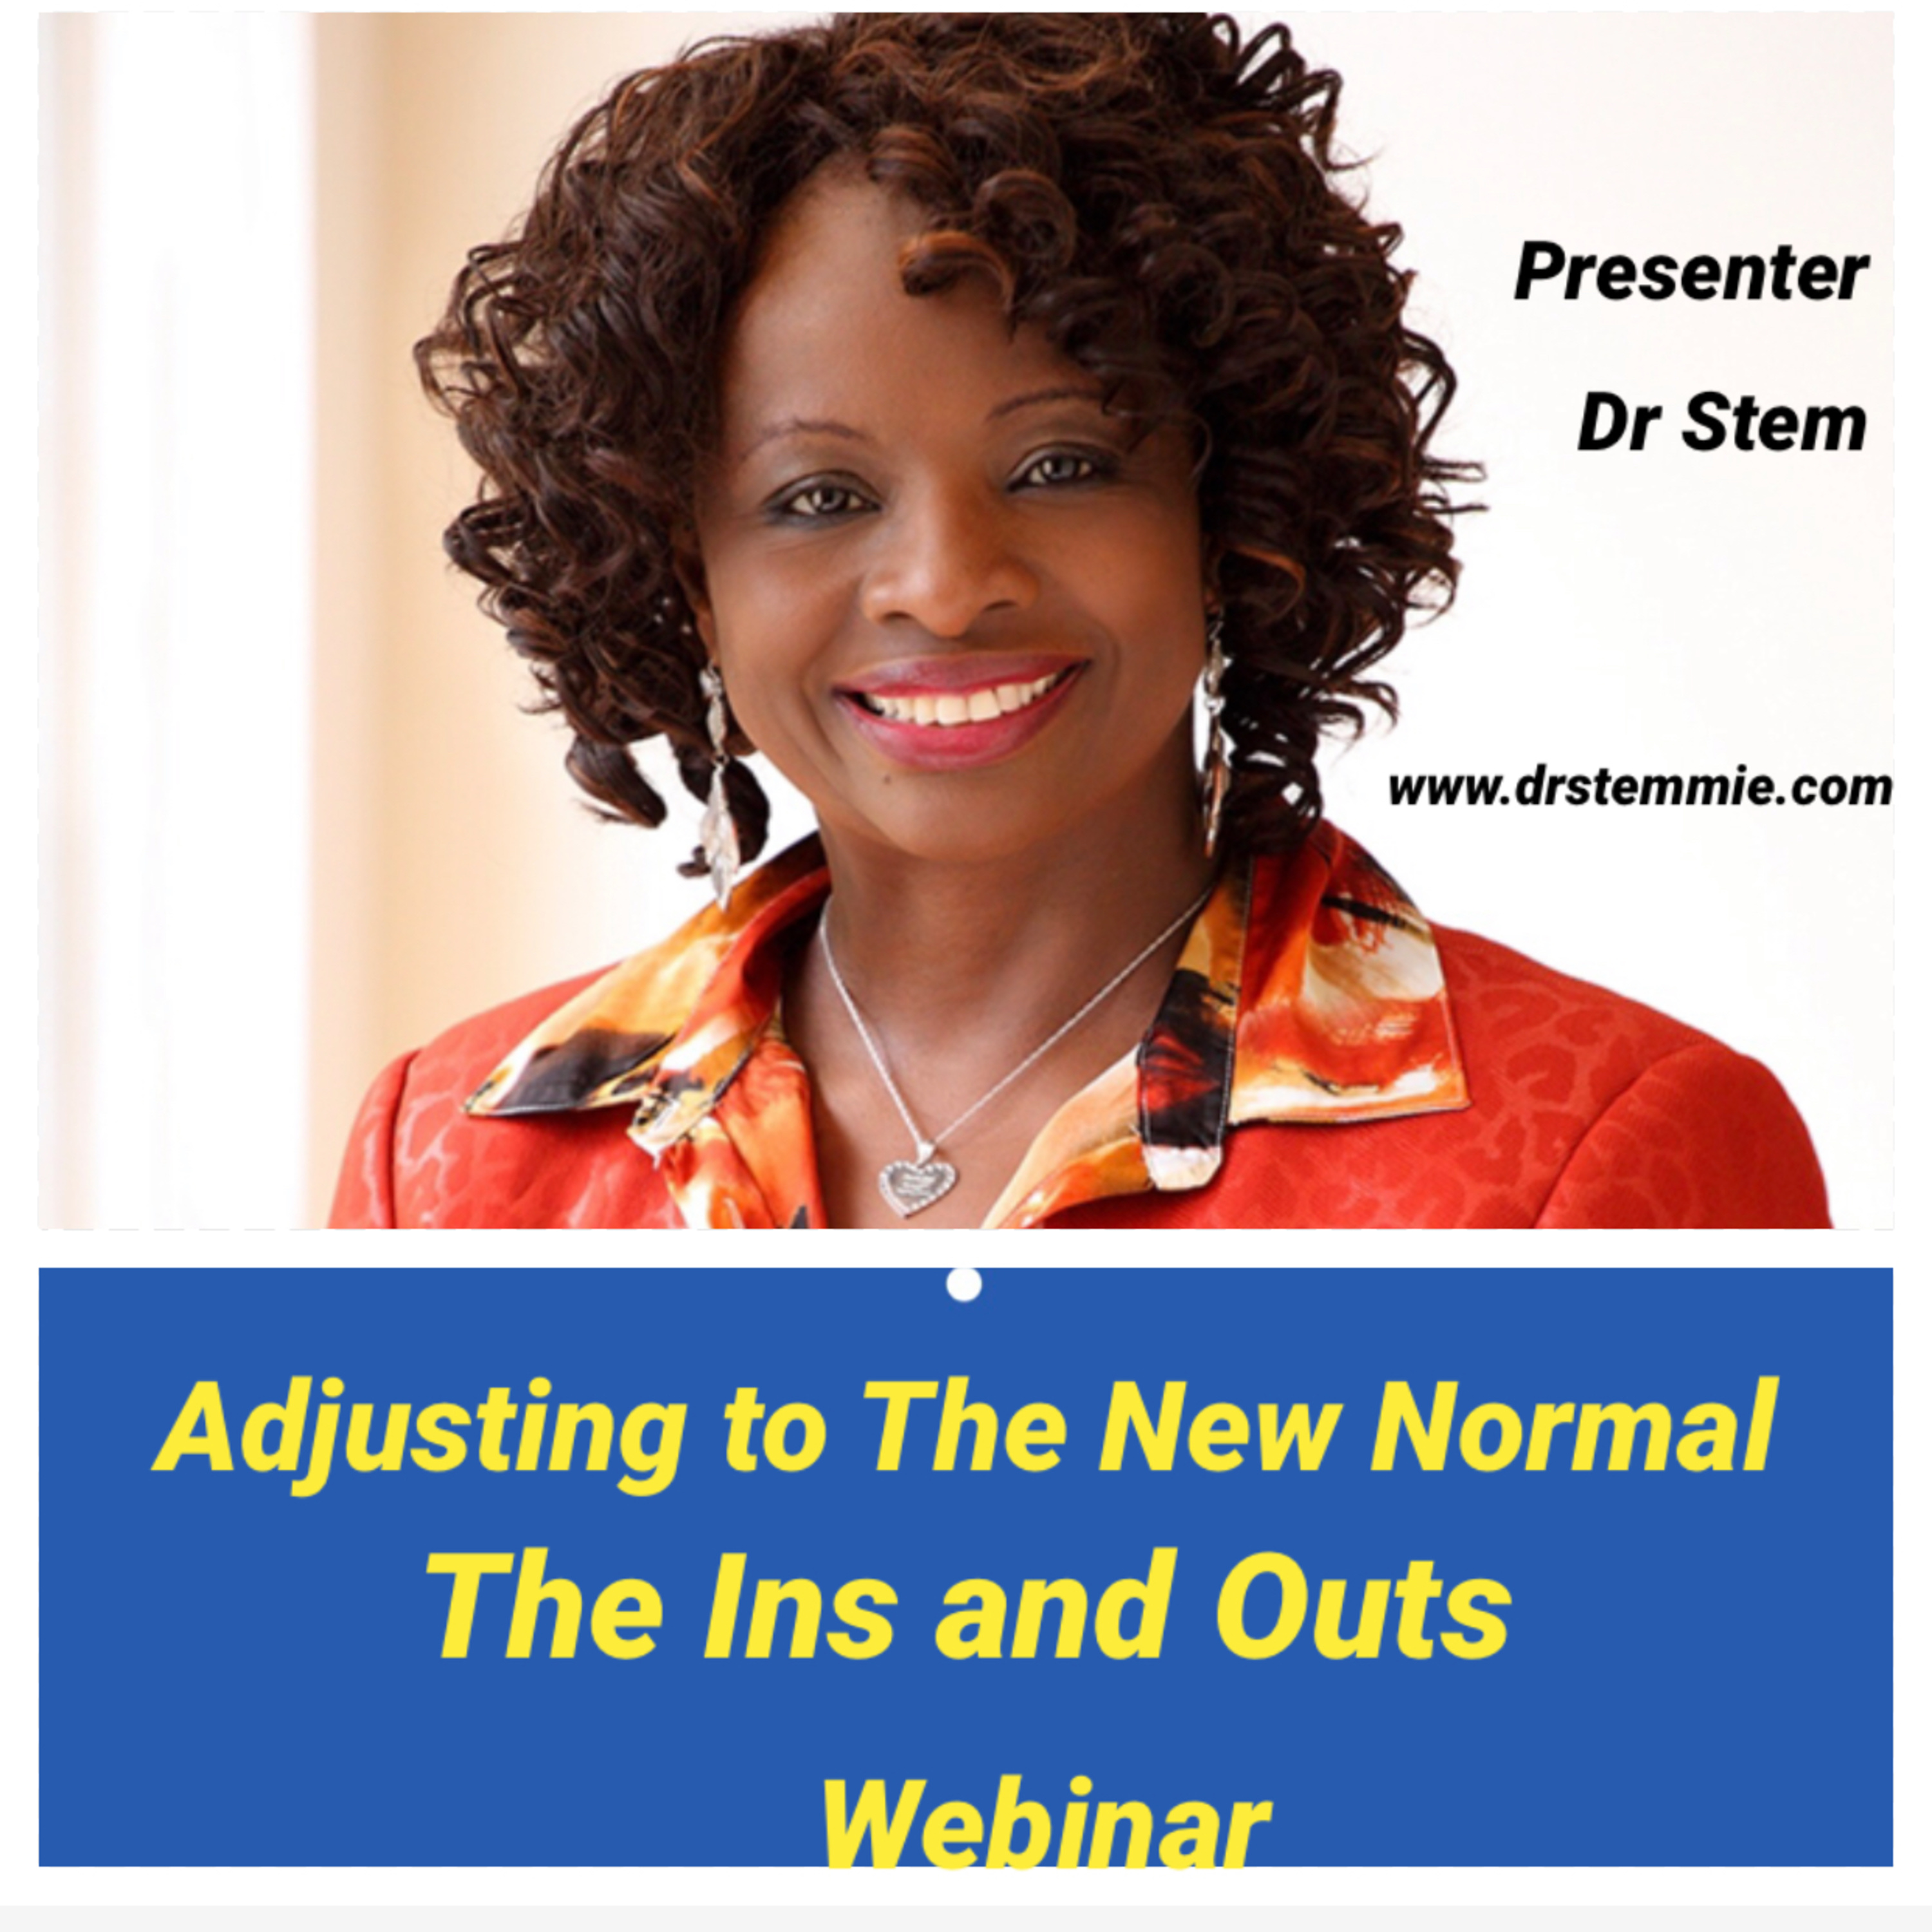 Adjusting to The New Norm The Ins & Outs with DrStem